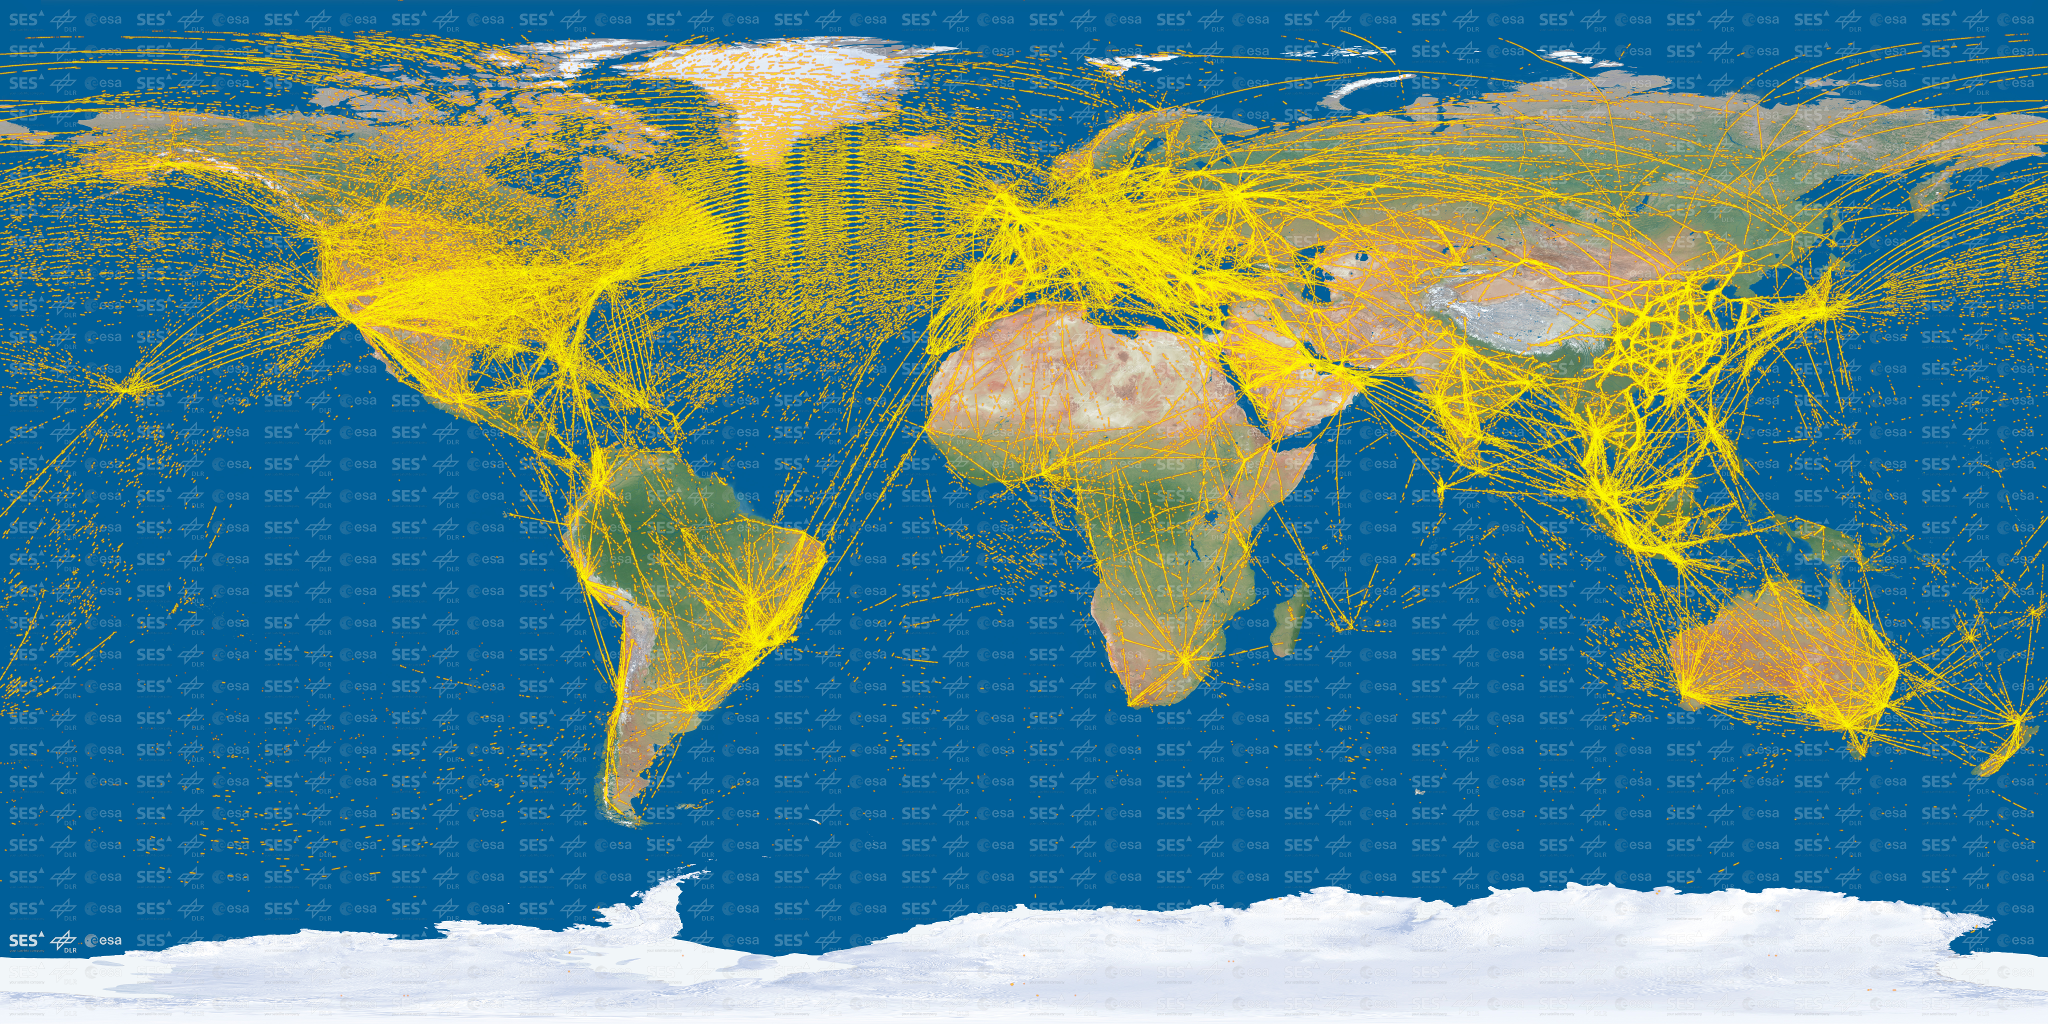 Air Traffic Map Live.World Air Traffic As Mapped By Esa S Proba V Satellite 2048 X 1024